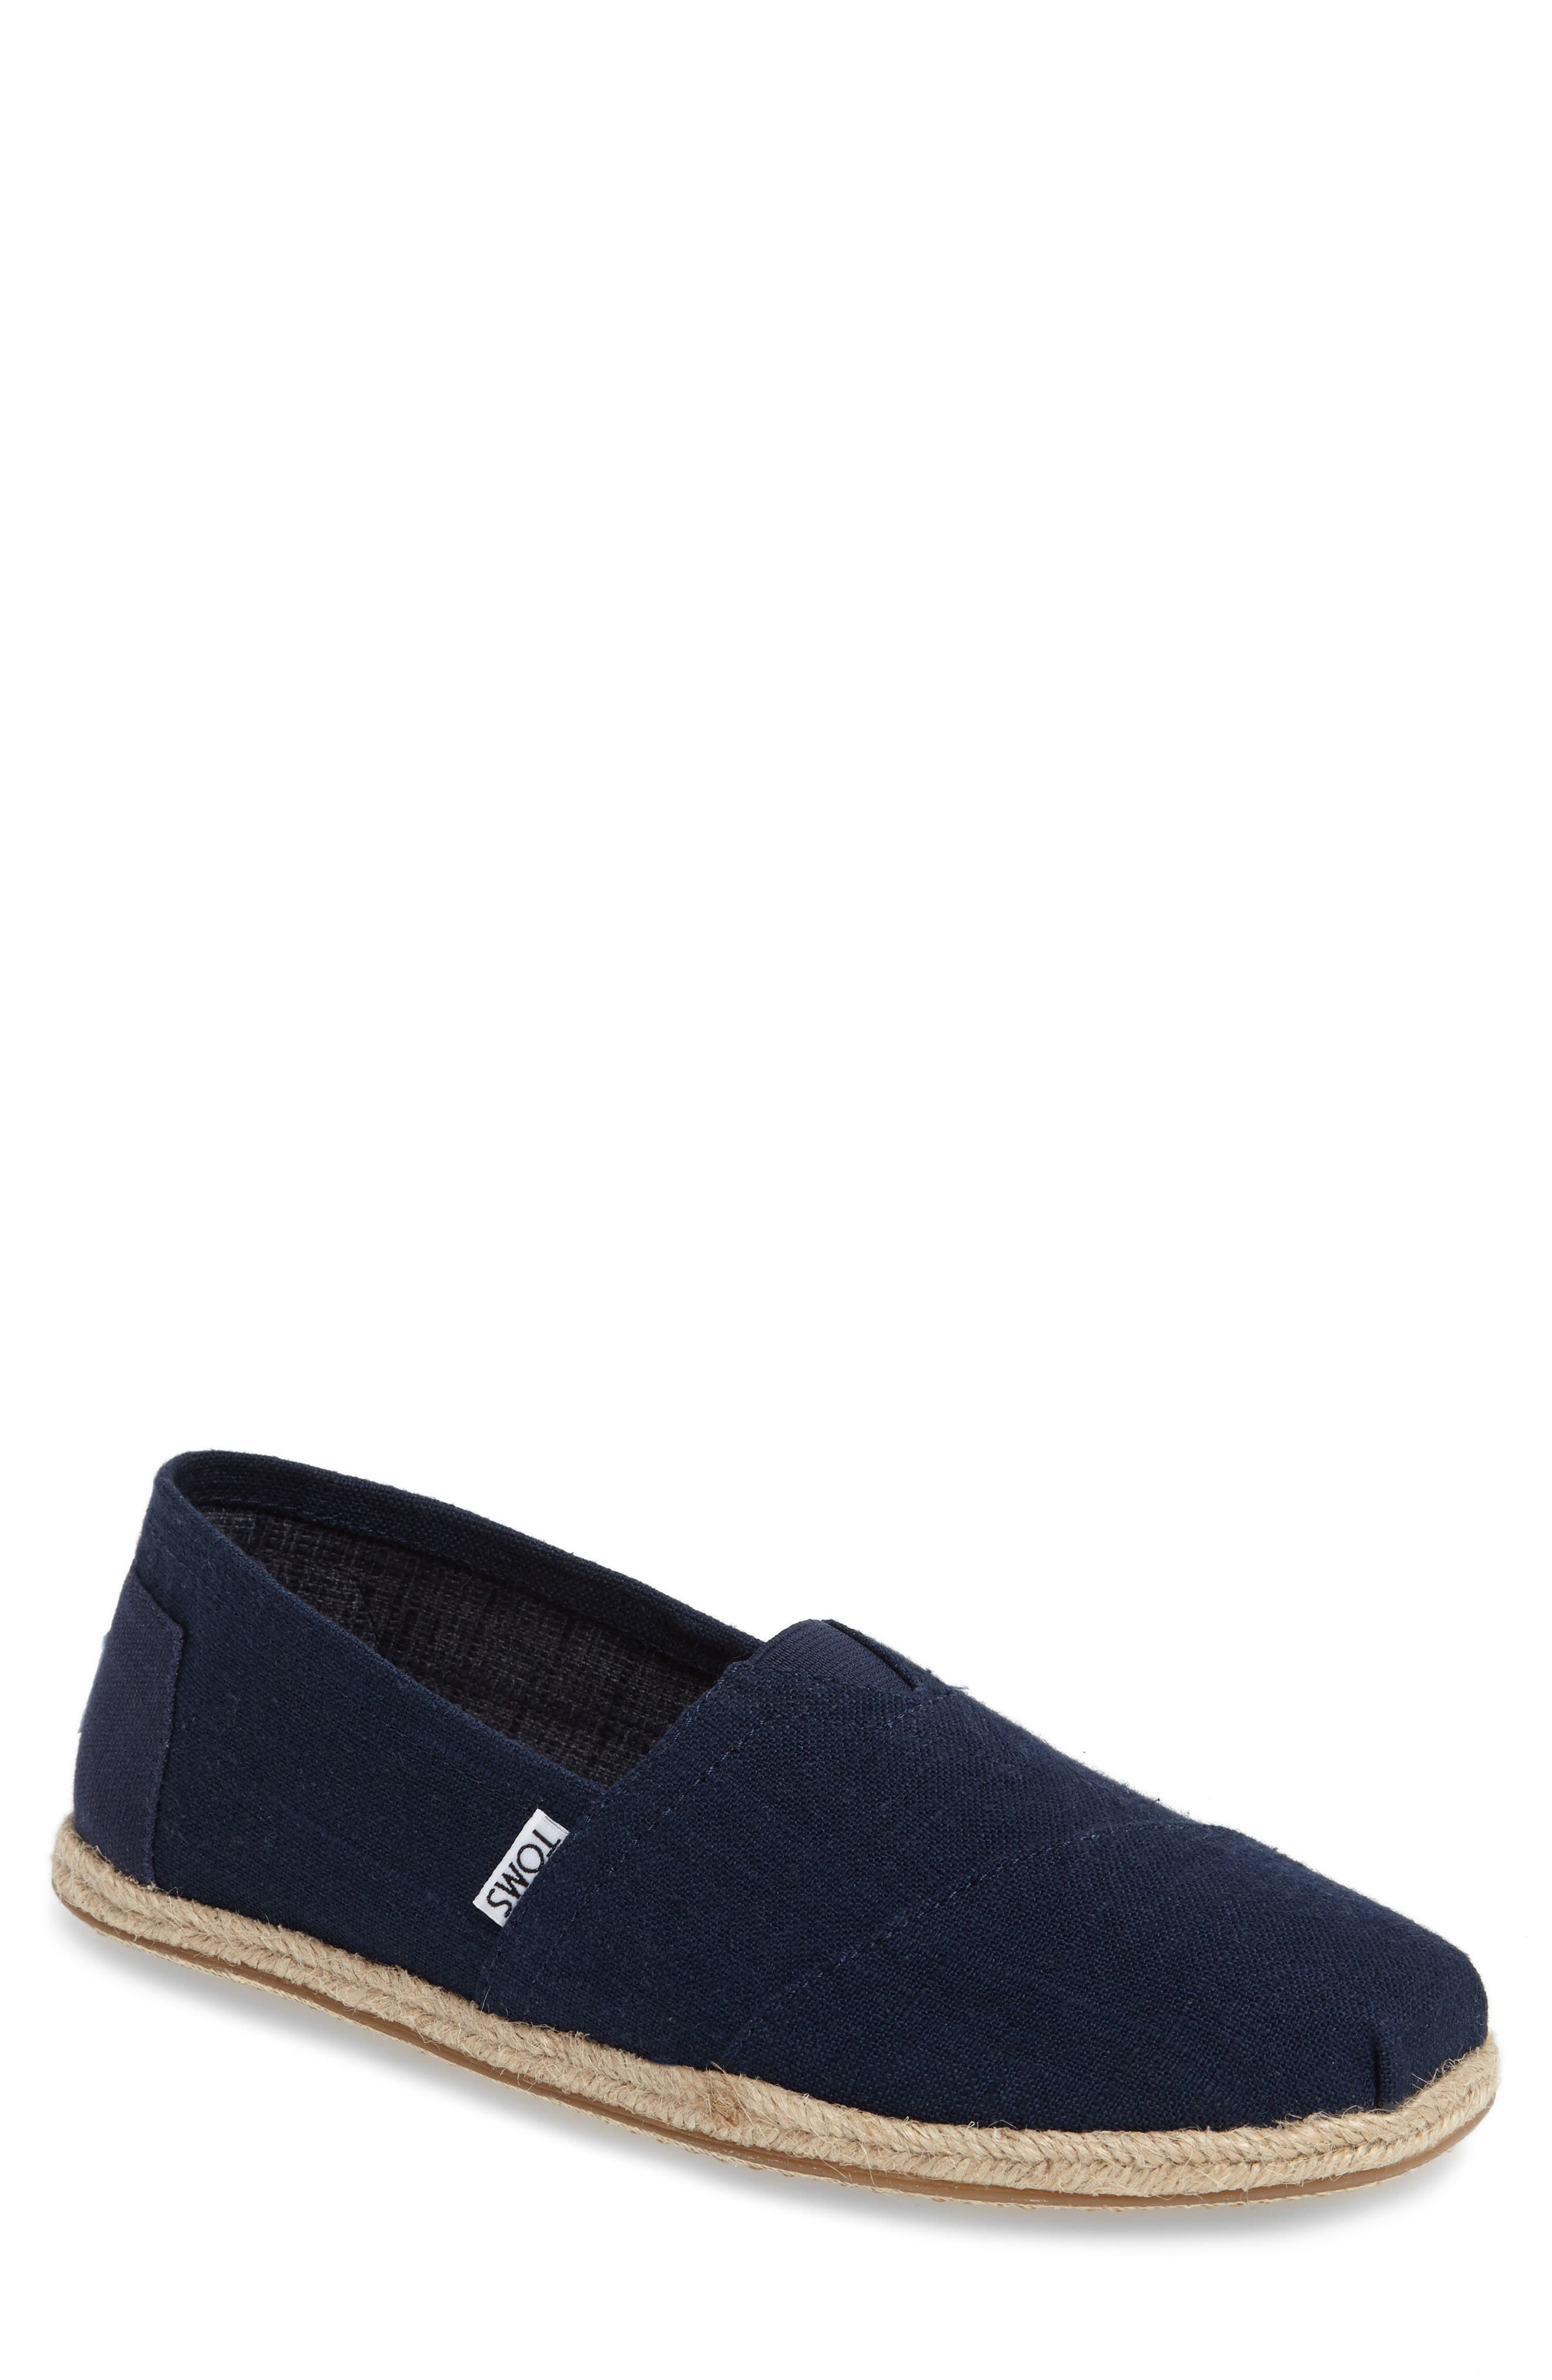 Alternate Image 1 Selected - TOMS 'Classic' Canvas Slip-On (Men)